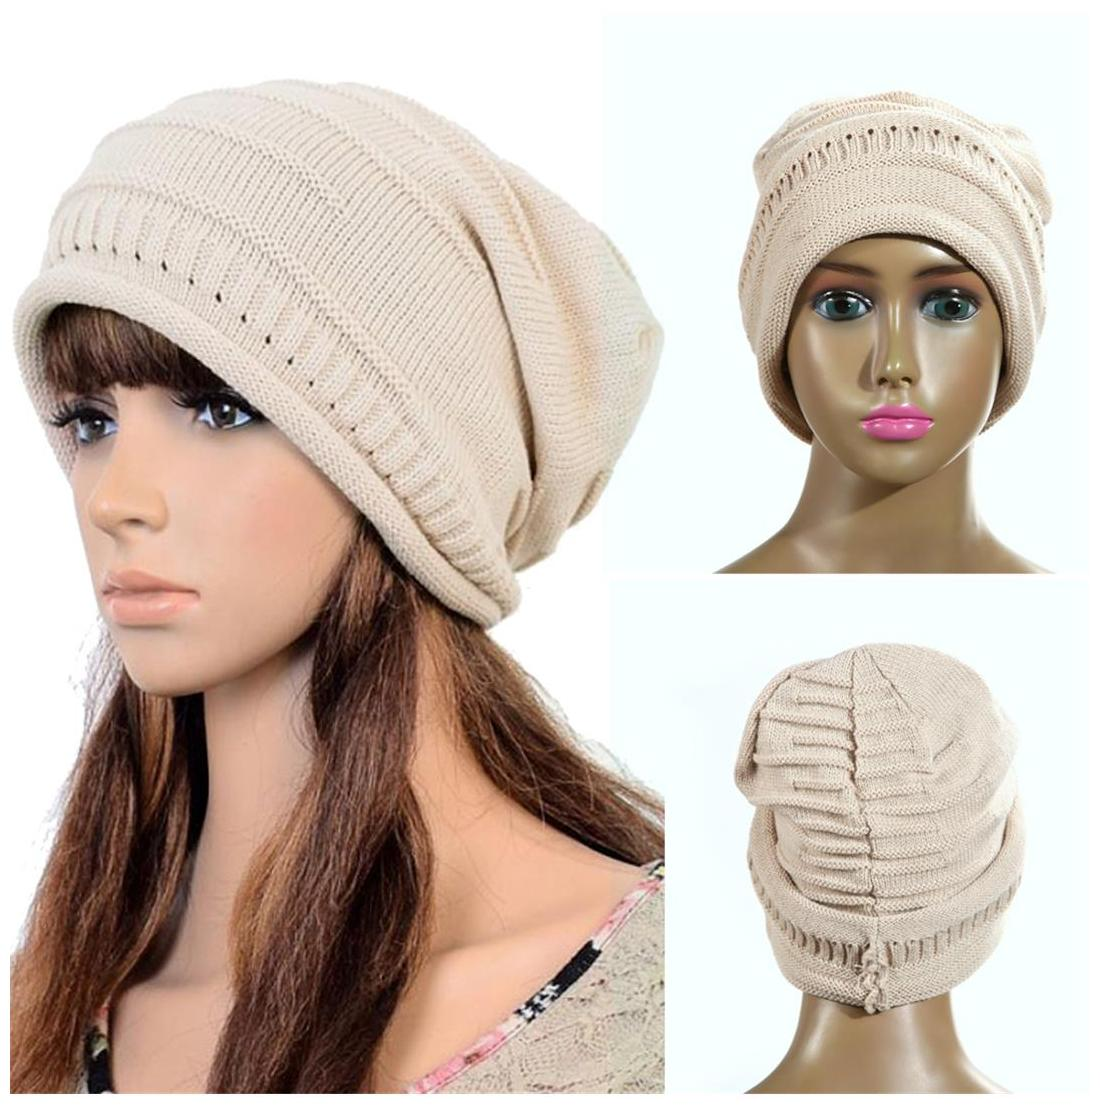 Buy Women Men Warm Ski Knitted Crochet Baggy Beanie Hat Cap Beret Beige Online at Low Prices in India - Paytmmall.com